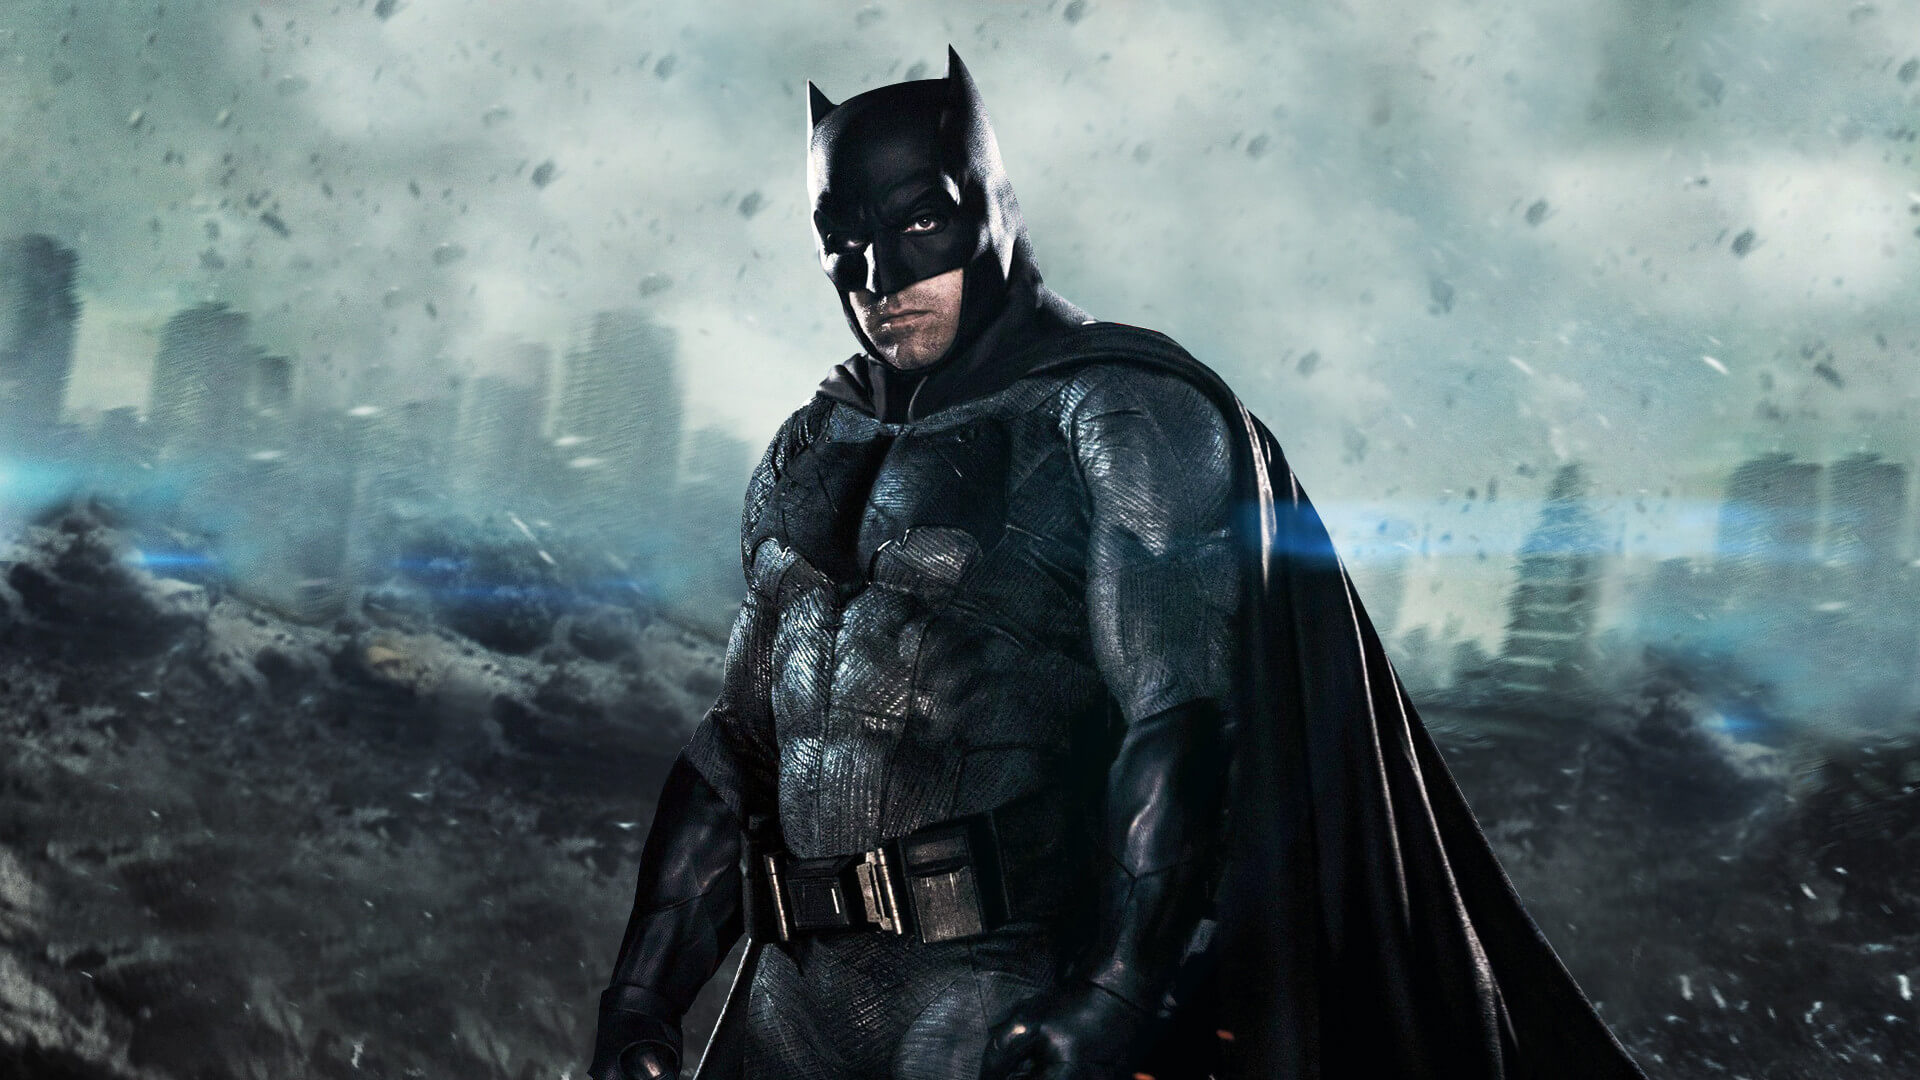 Ben Affleck's The Batman Film Facing Complete Rewrite